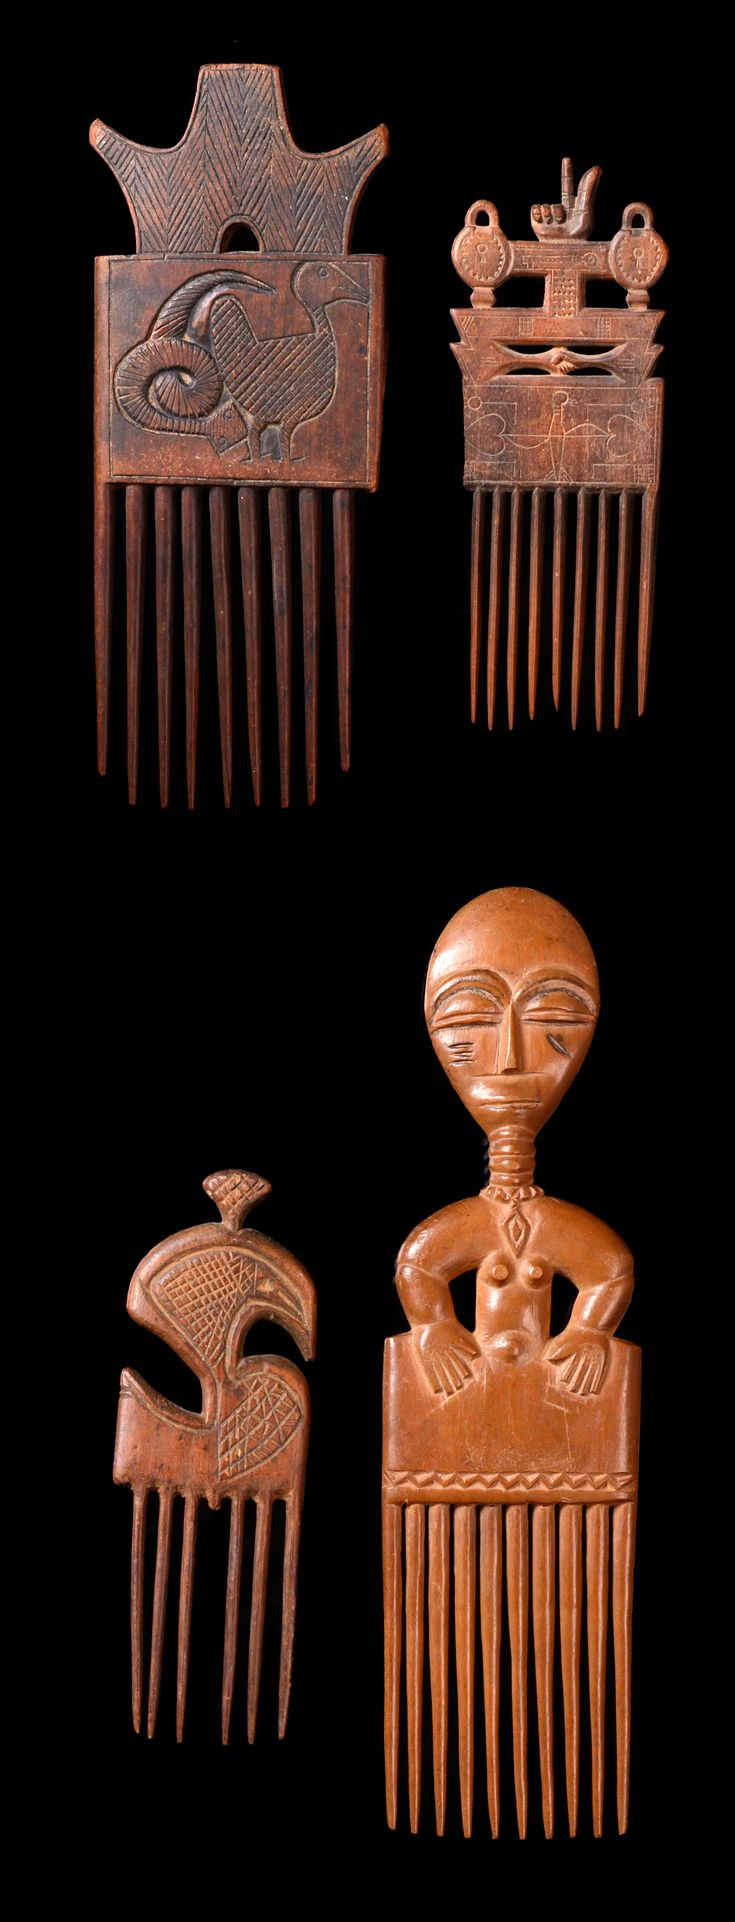 Africa | Four hair combs from the Ashanti people of Ghana | Wood